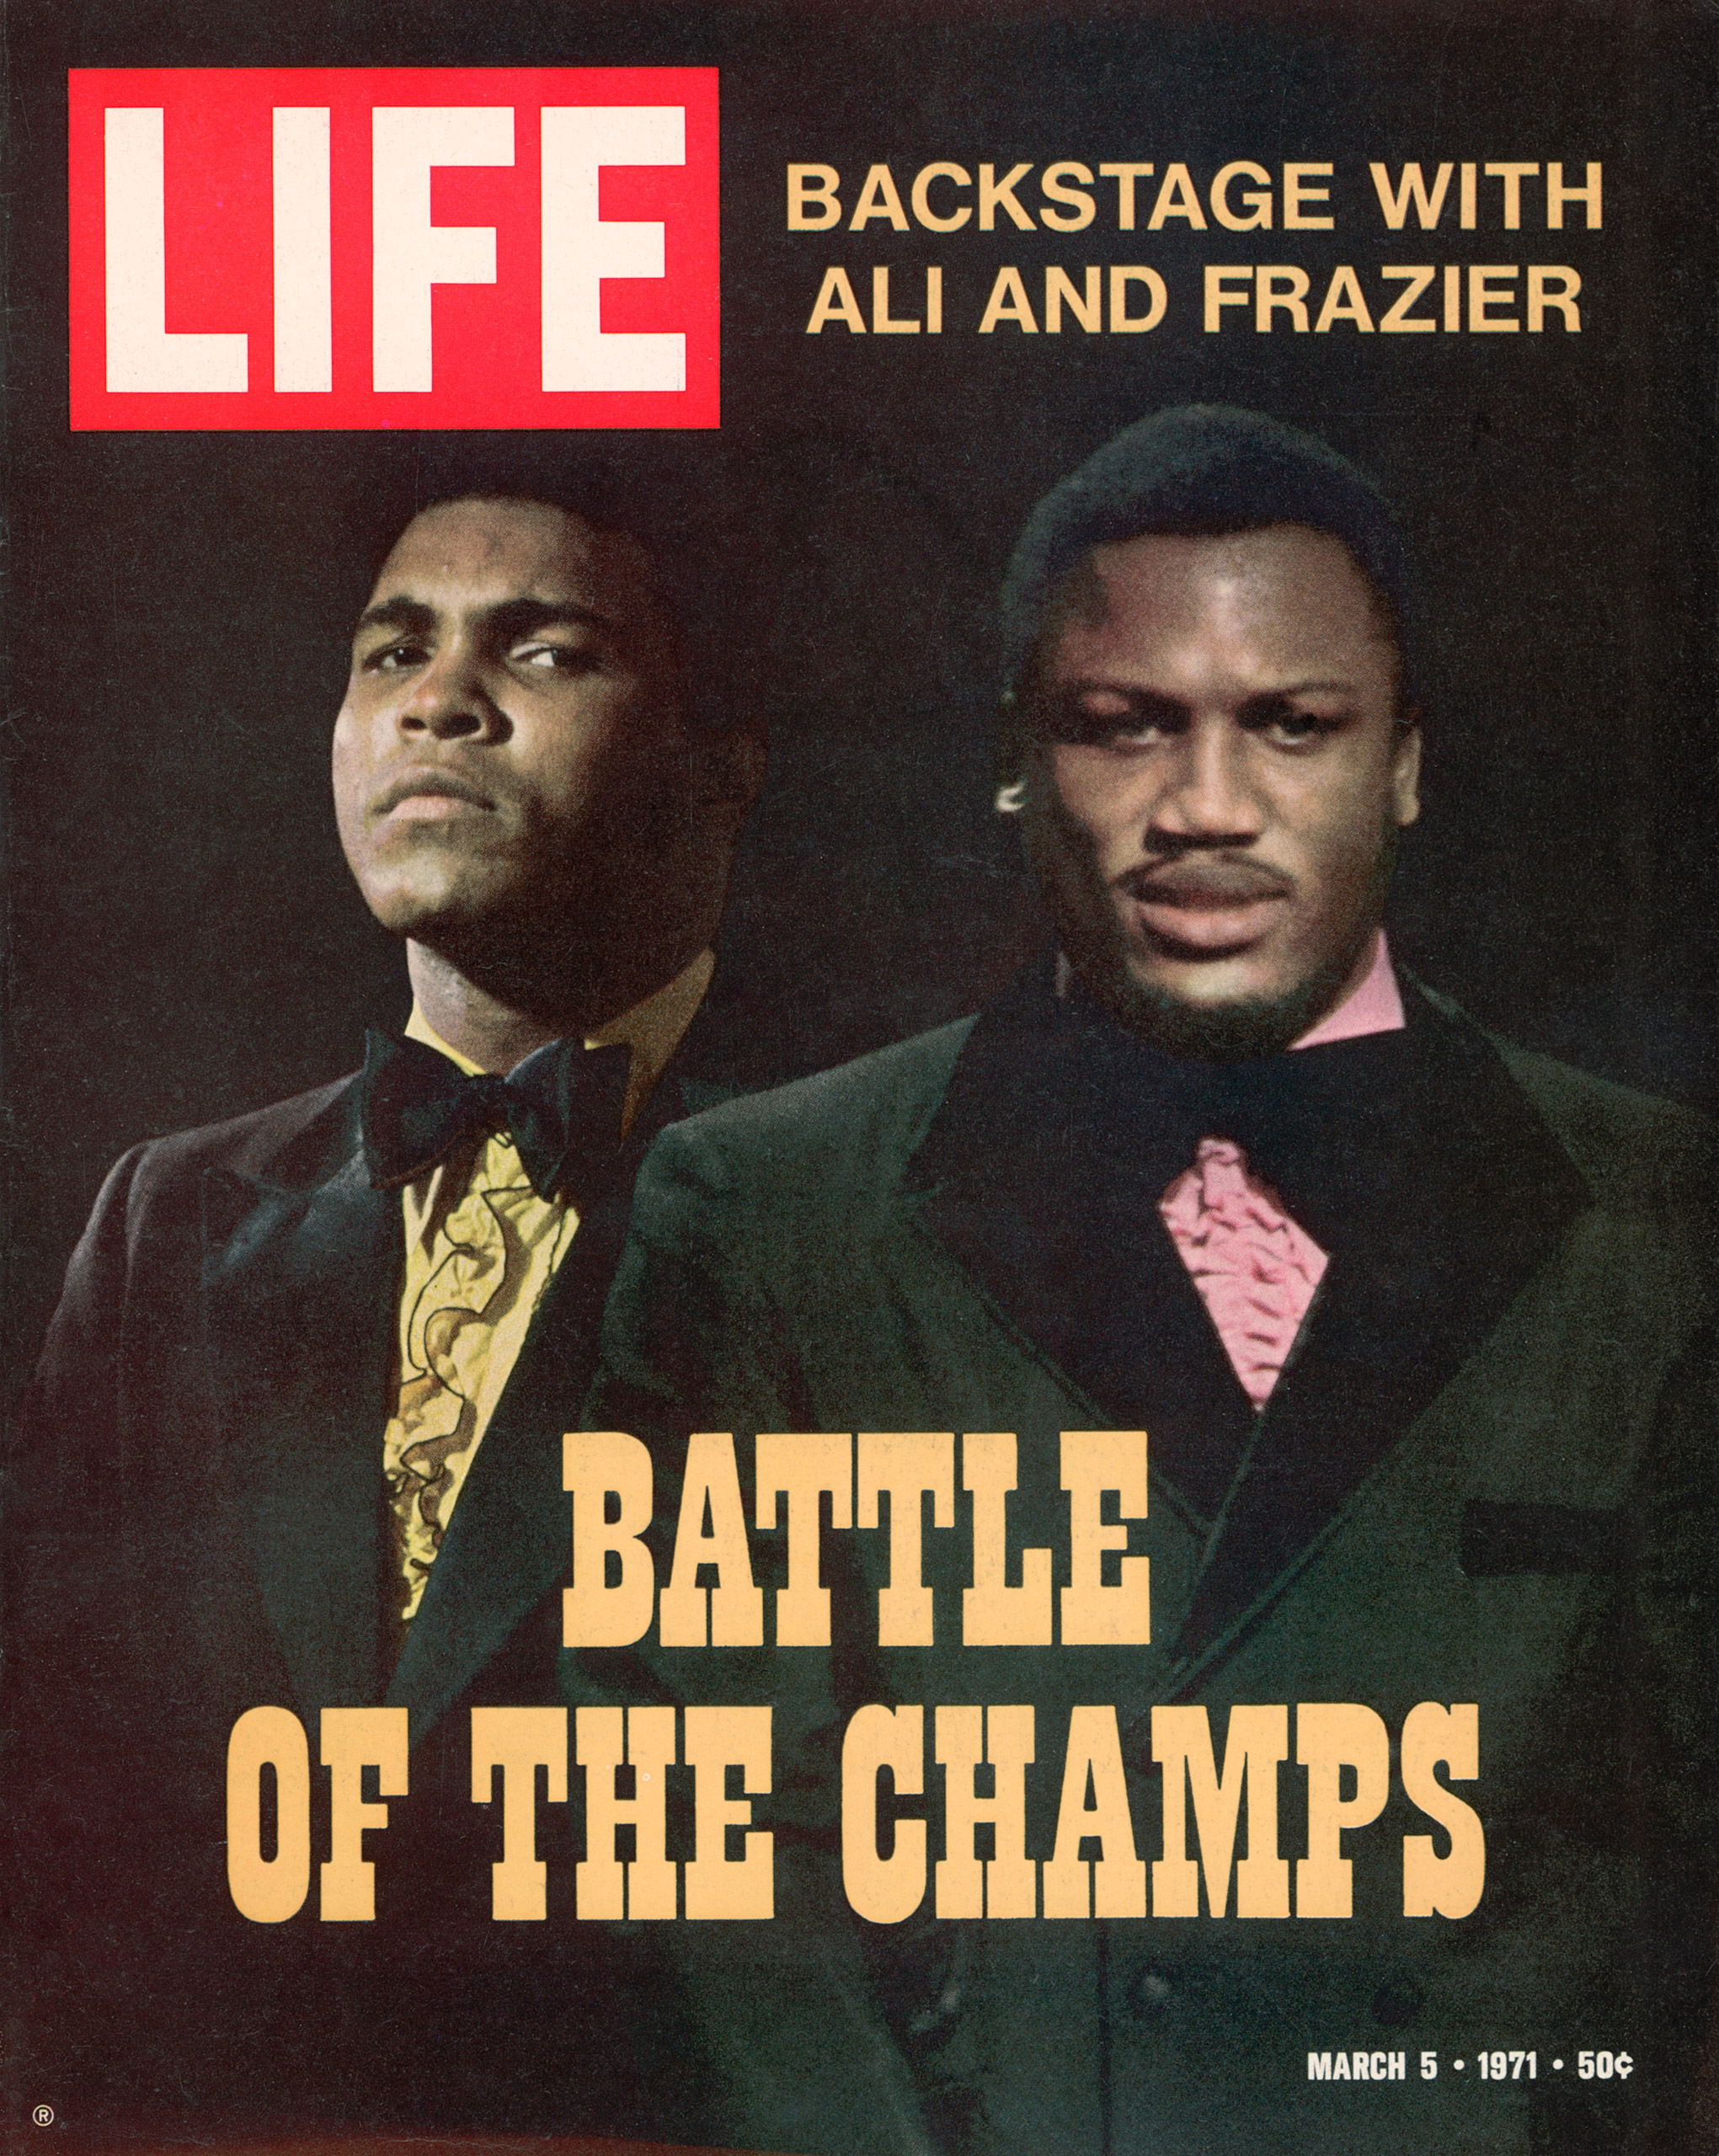 Muhammad Ali and John Frazier LIFE magazine cover dated March 5, 1971.